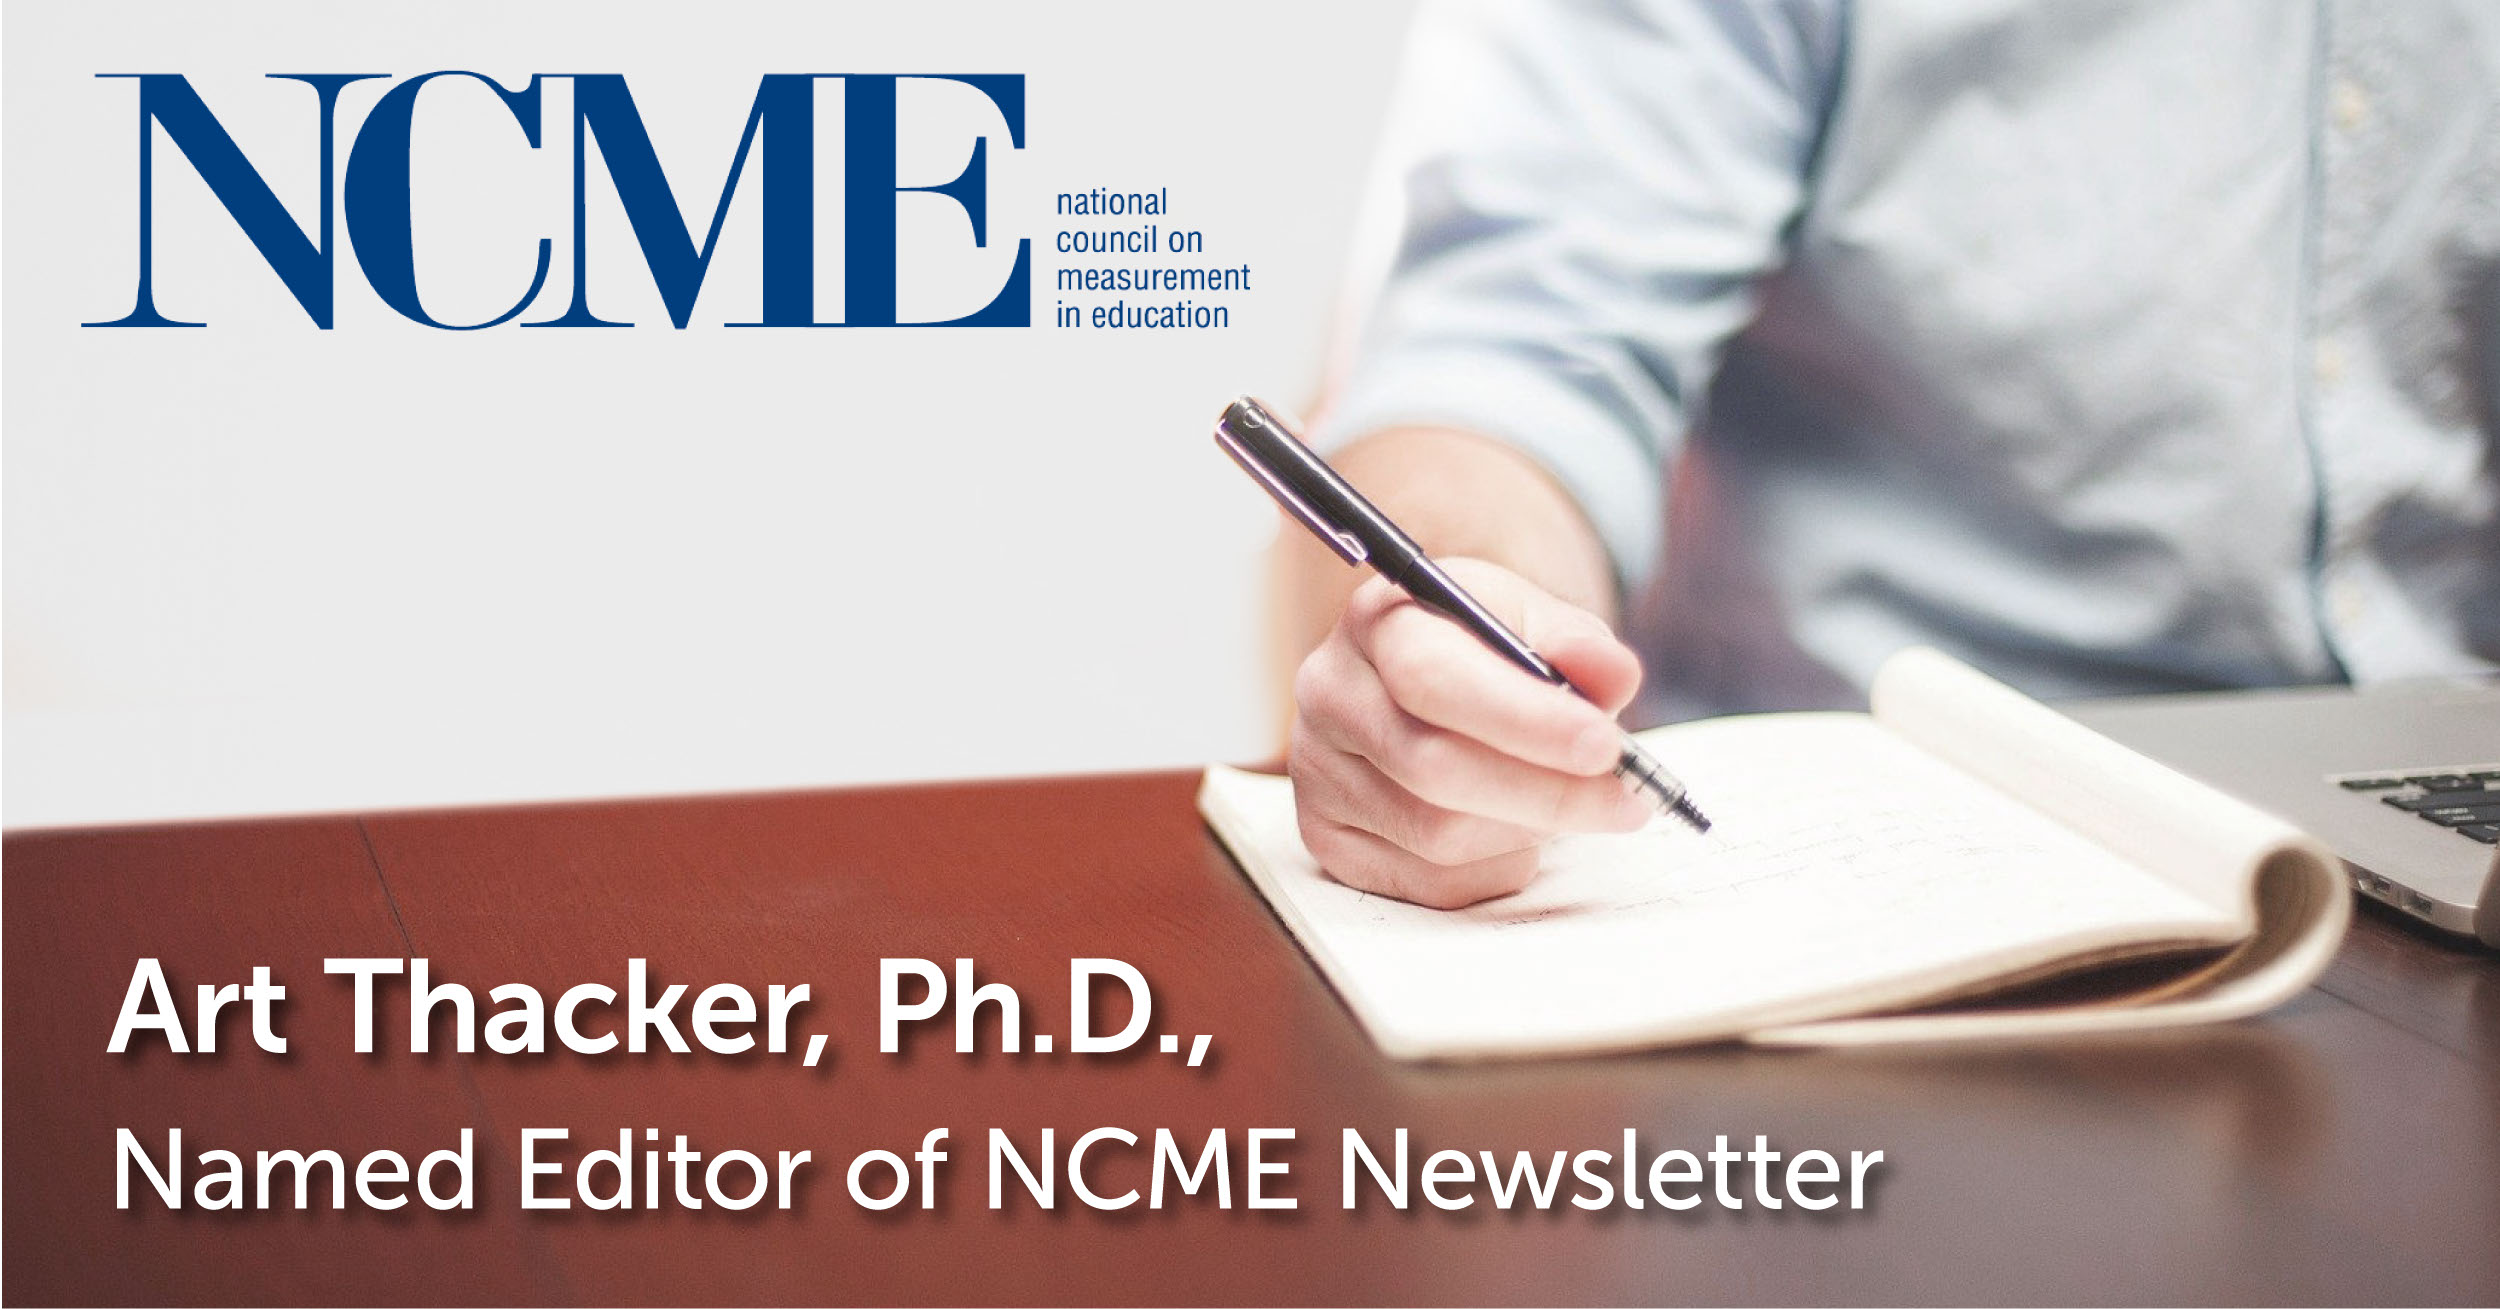 Art Thacker, Ph.D., Named Editor of NCME Newsletter